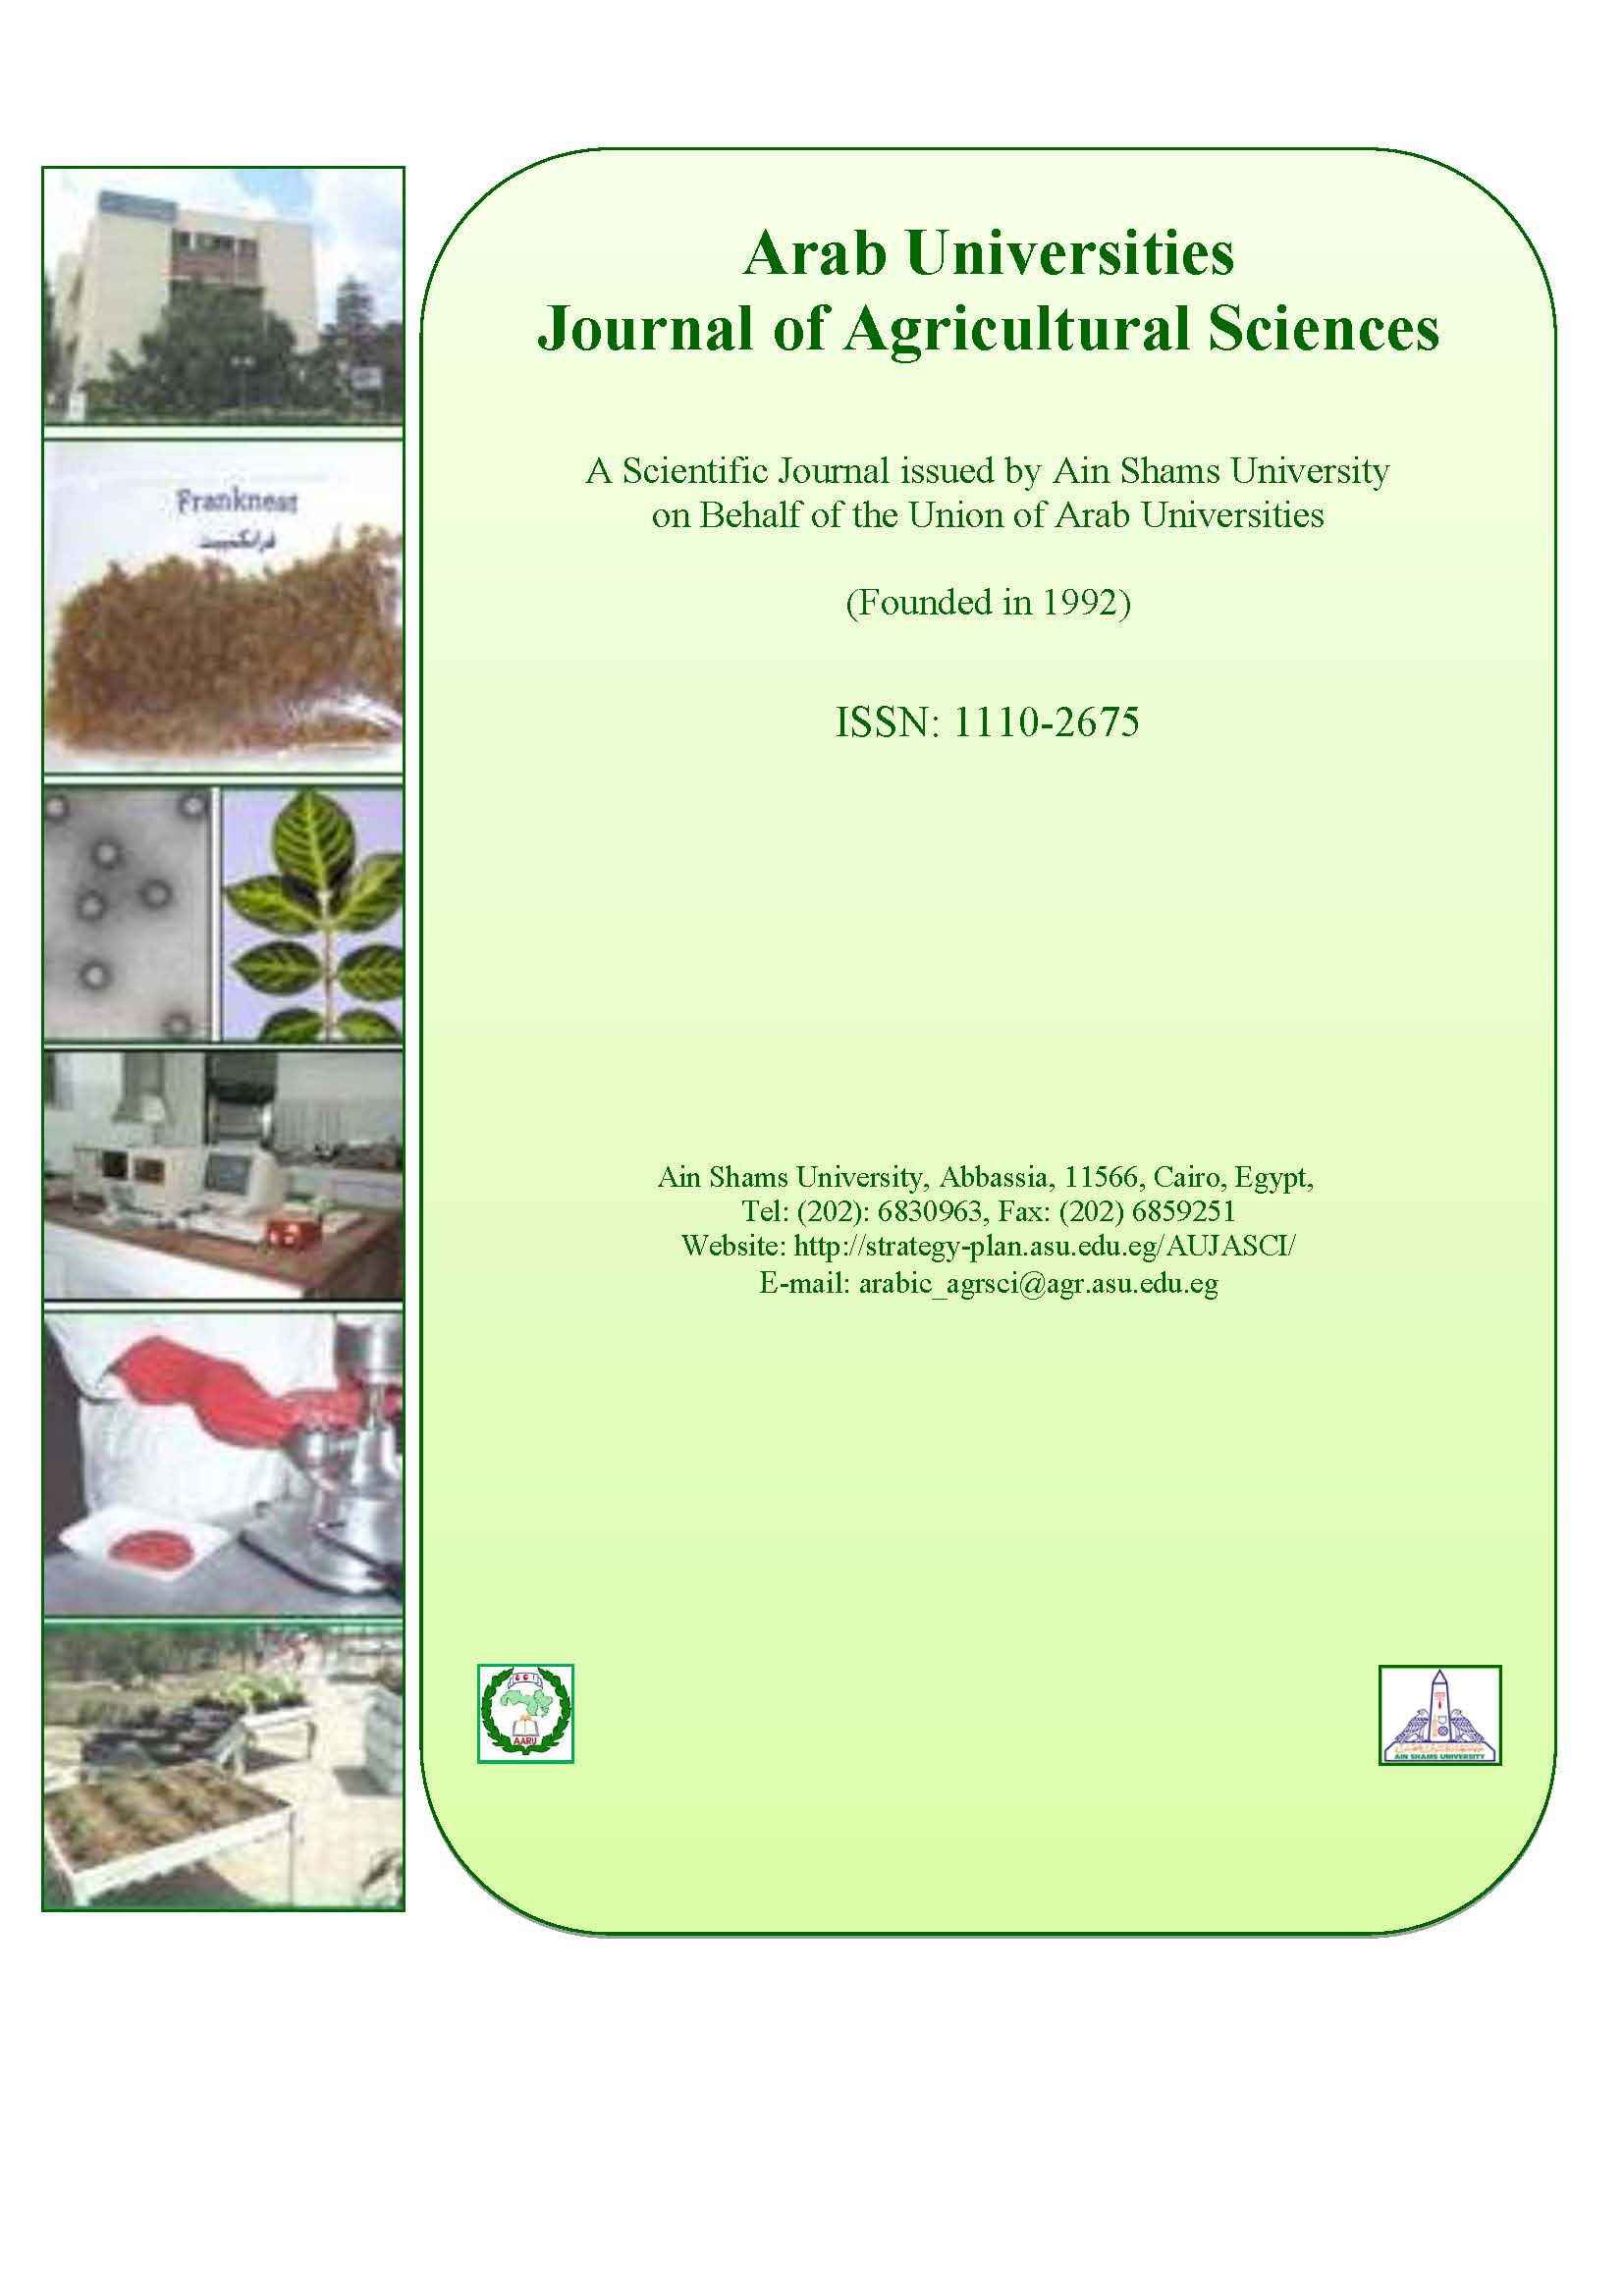 Arab Universities Journal of Agricultural Sciences